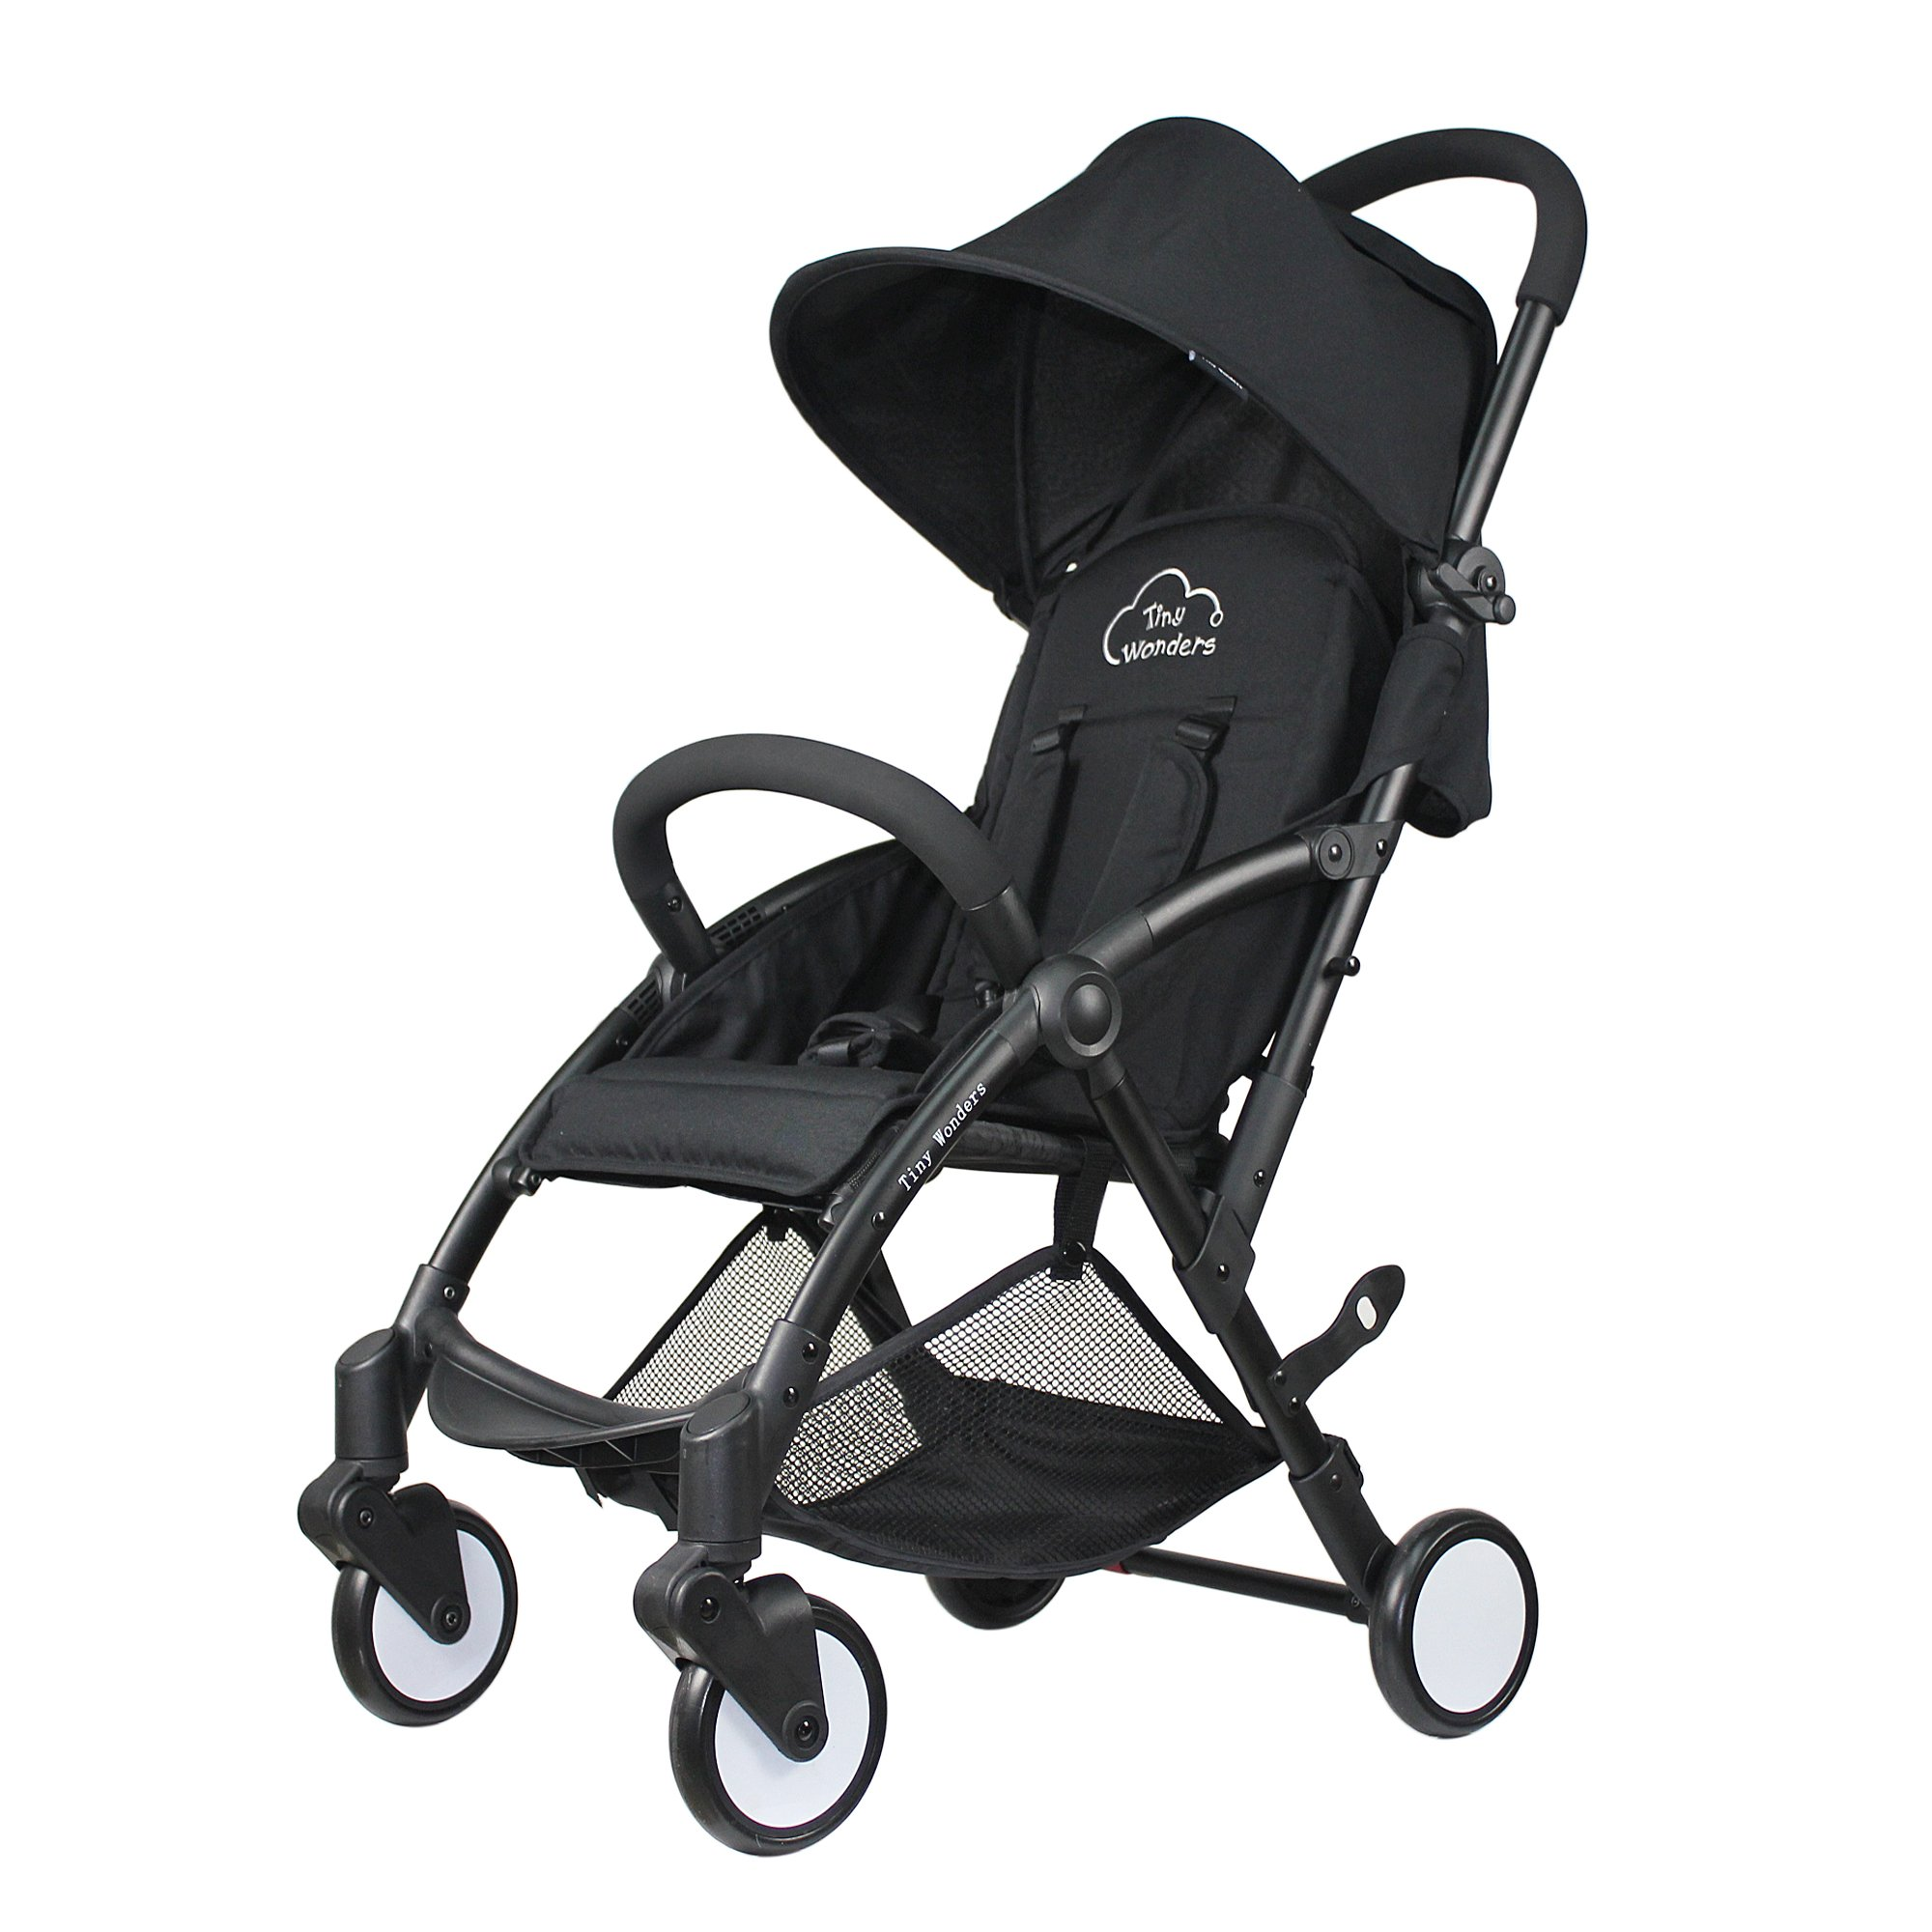 Buy Light Weight Stroller Now!